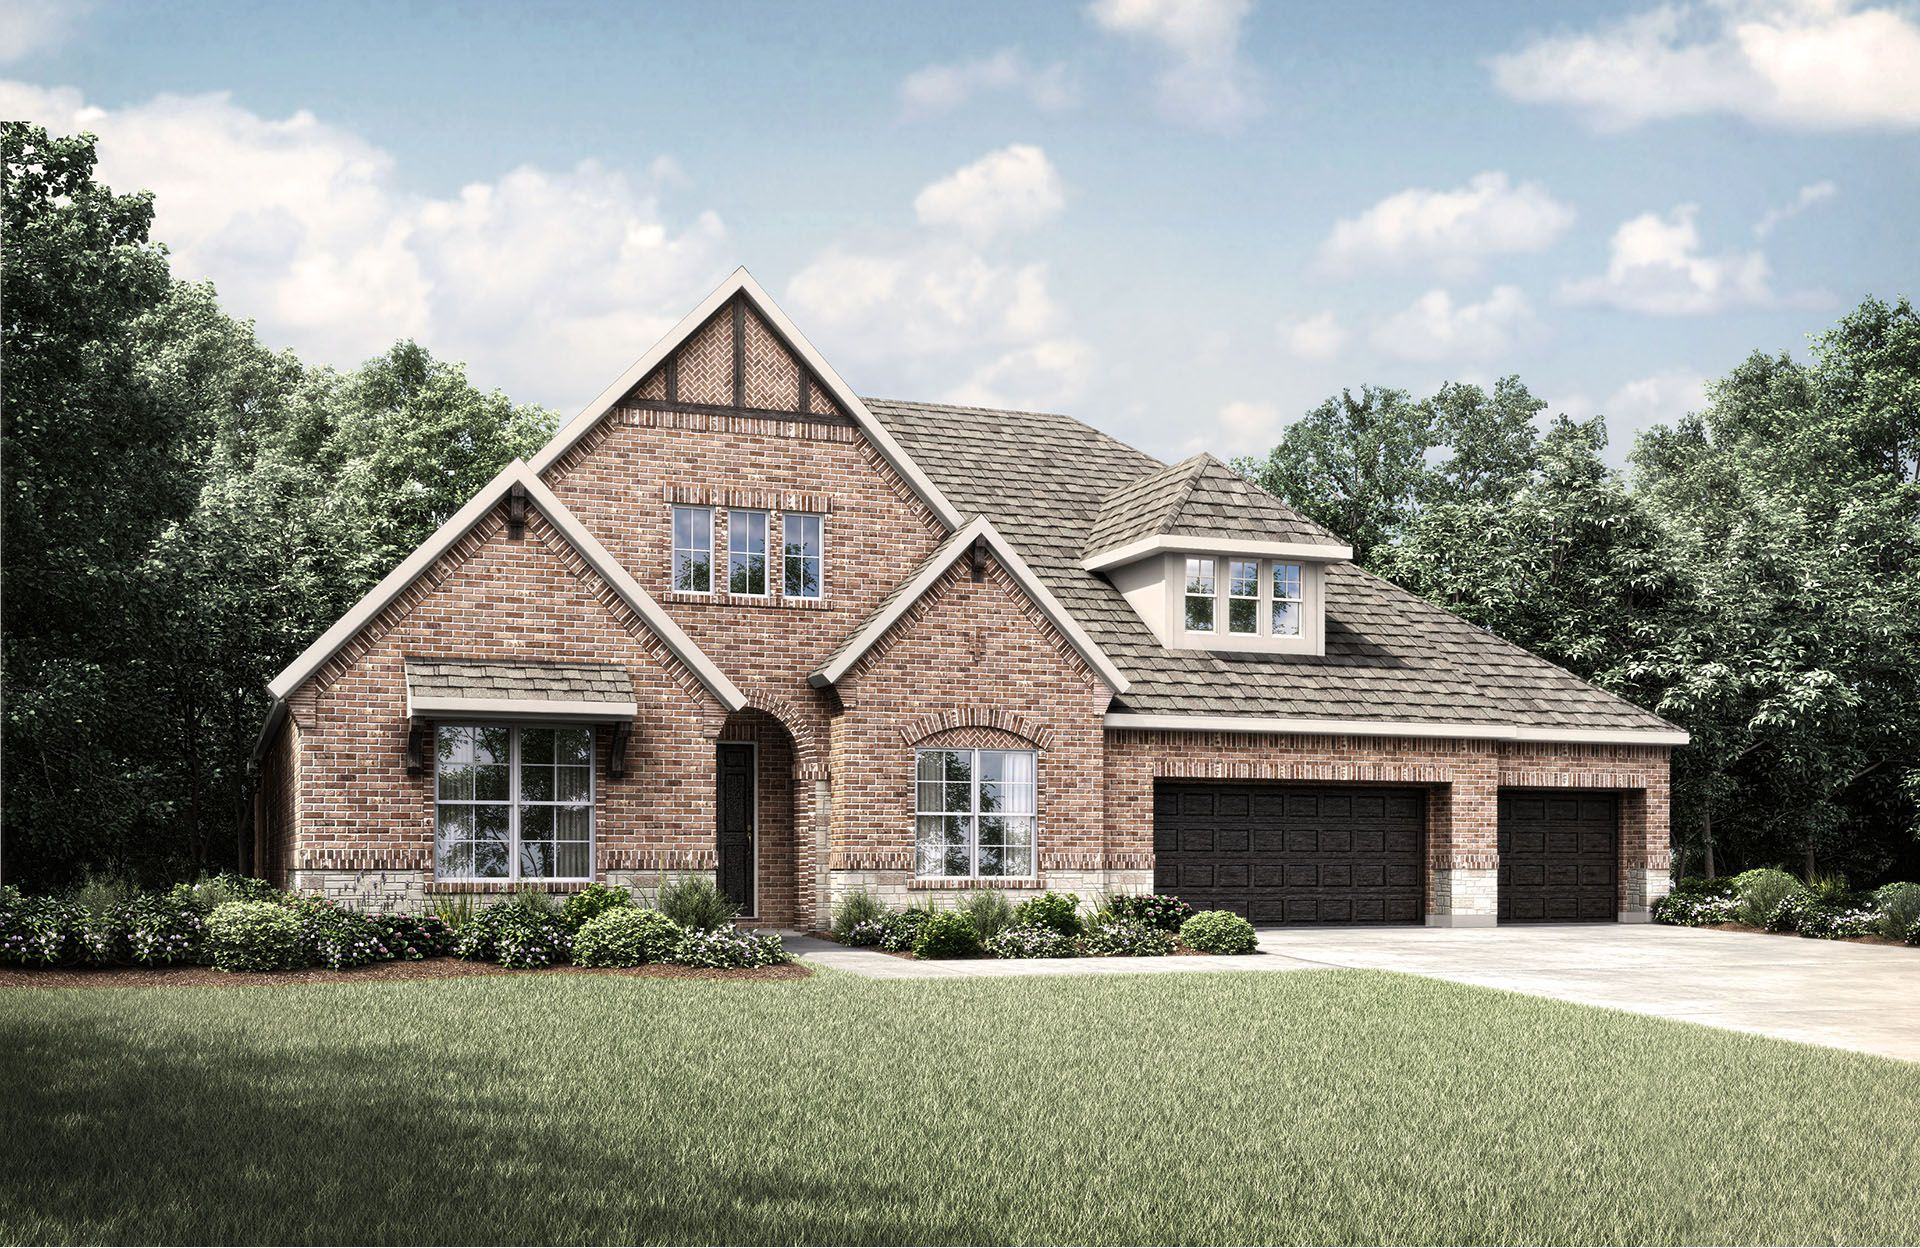 Unifamiliar por un Venta en Woodtrace - Torrey 33823 Mill Creek Way Pinehurst, Texas 77362 United States